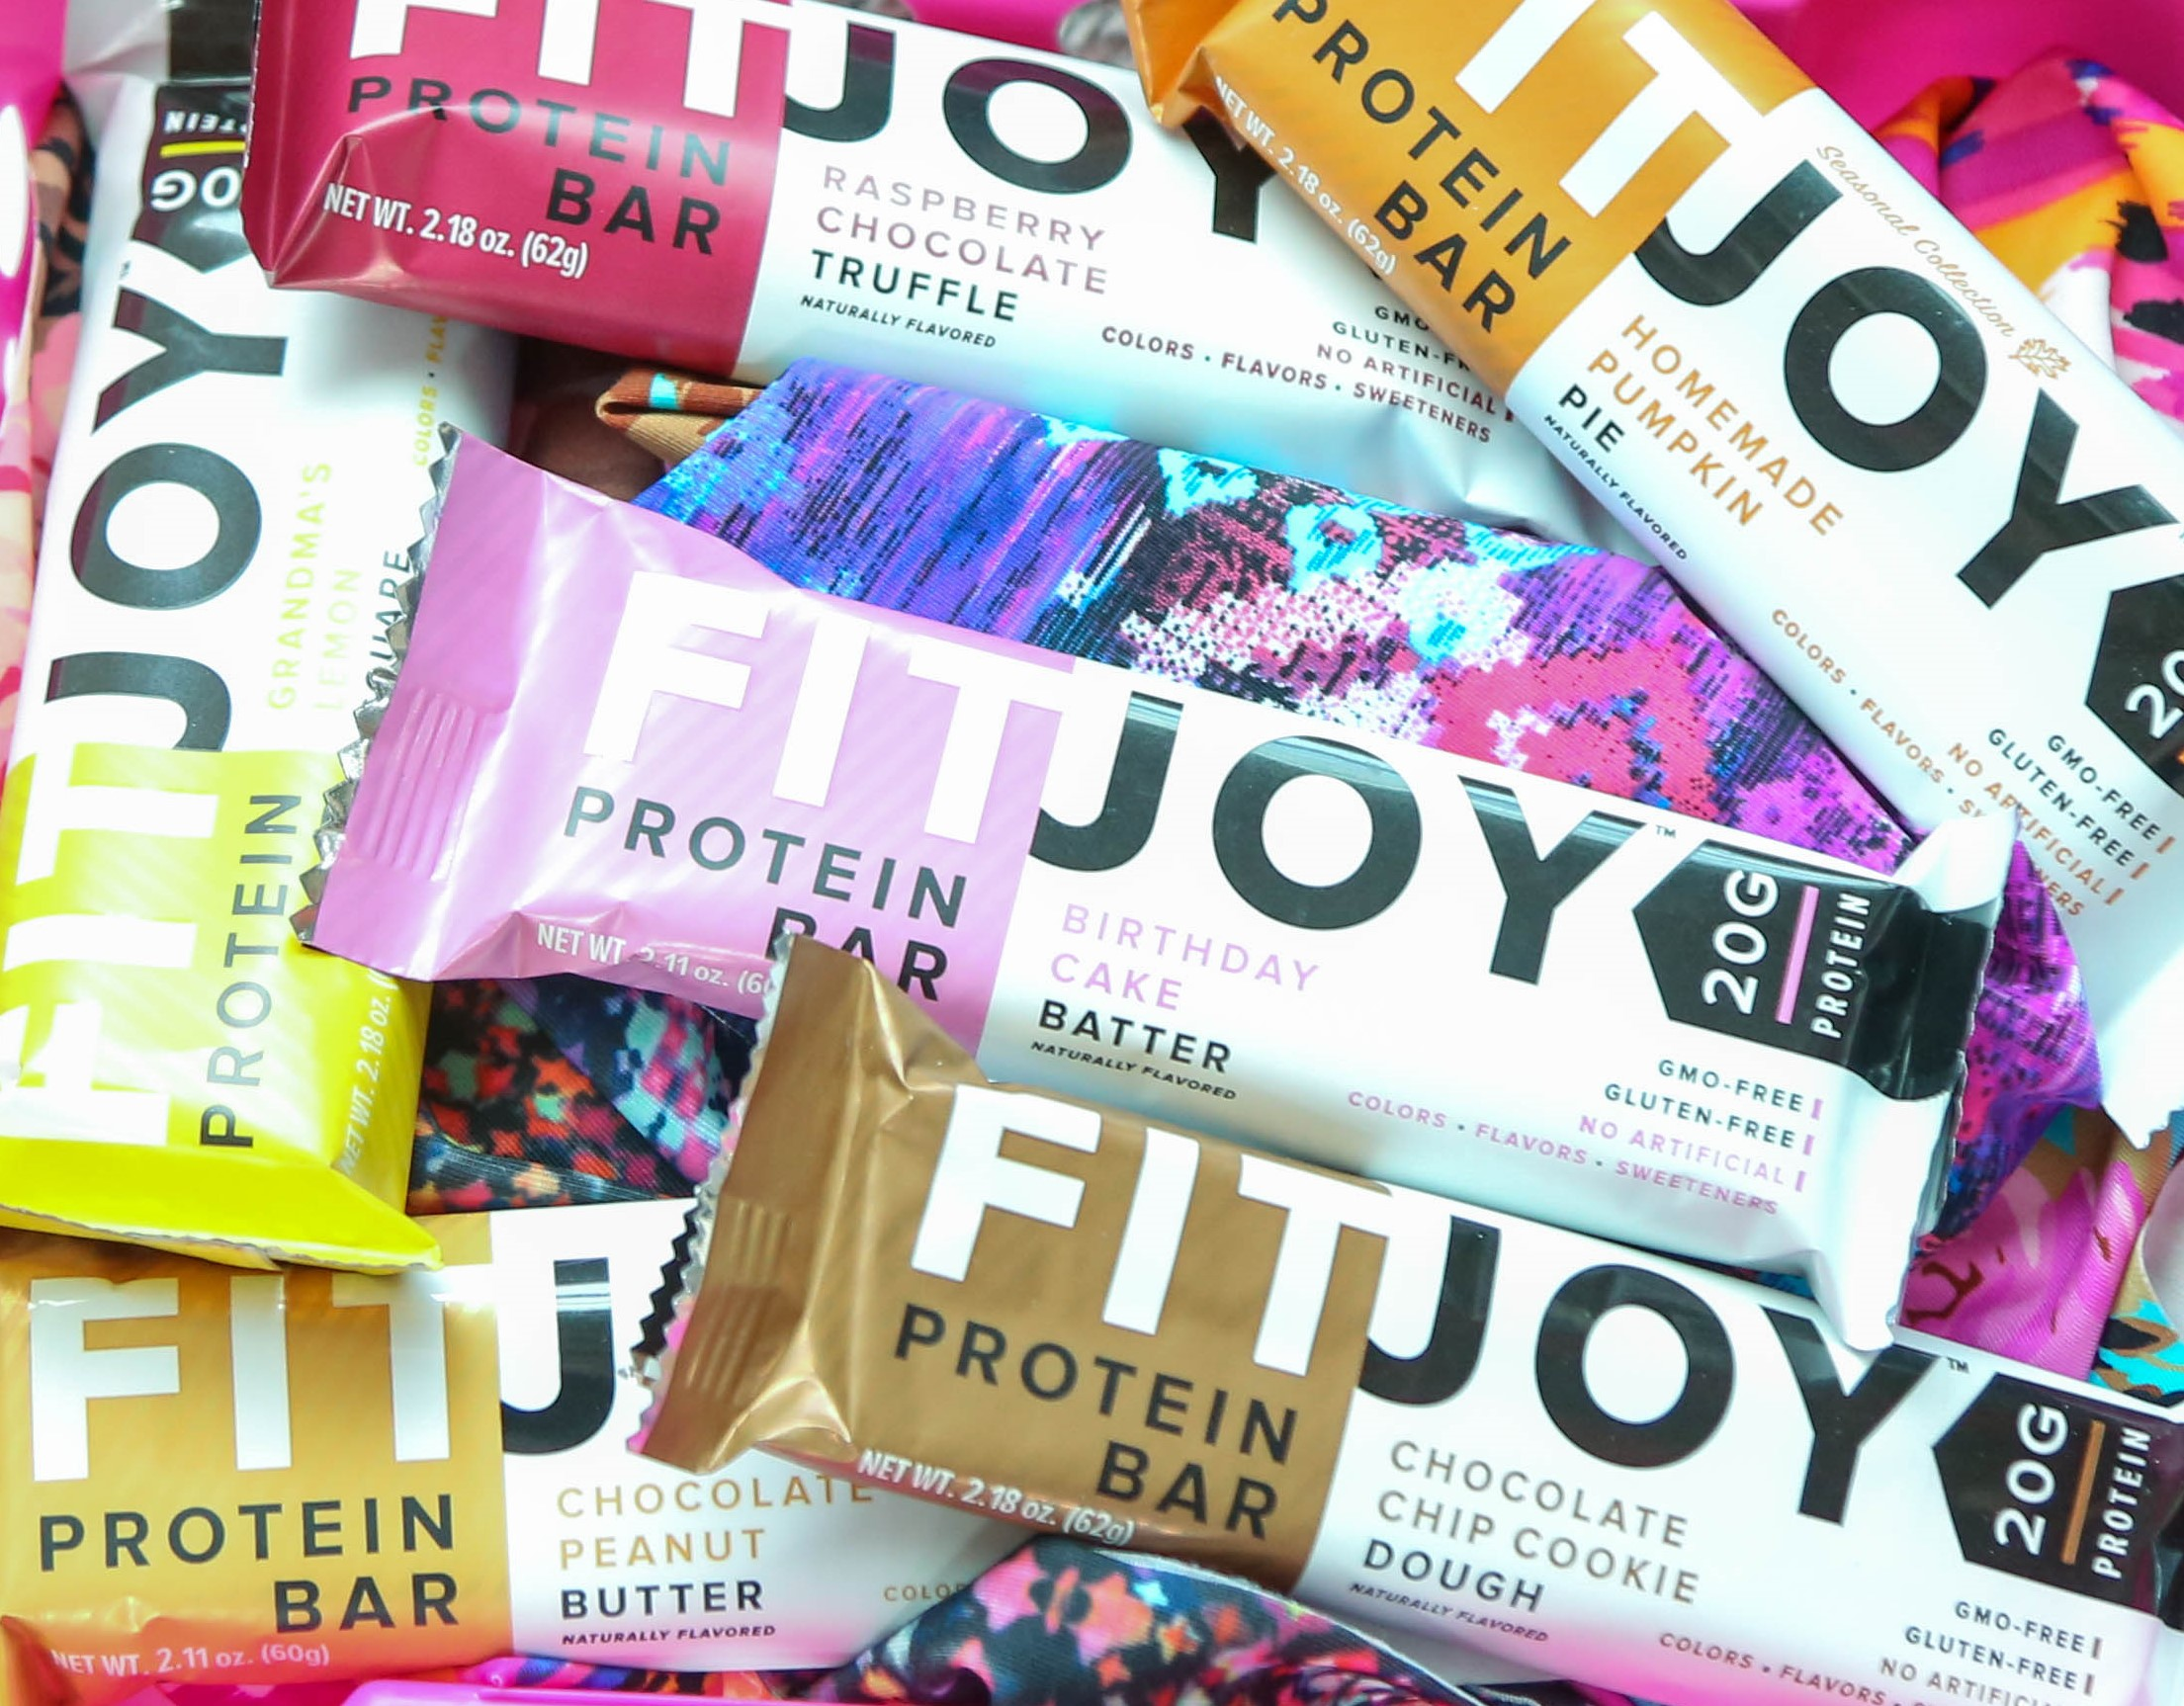 FitJoy gluten-free protein-packed bars can be a surprise delivery to the gym as a thank you for supporting your goals